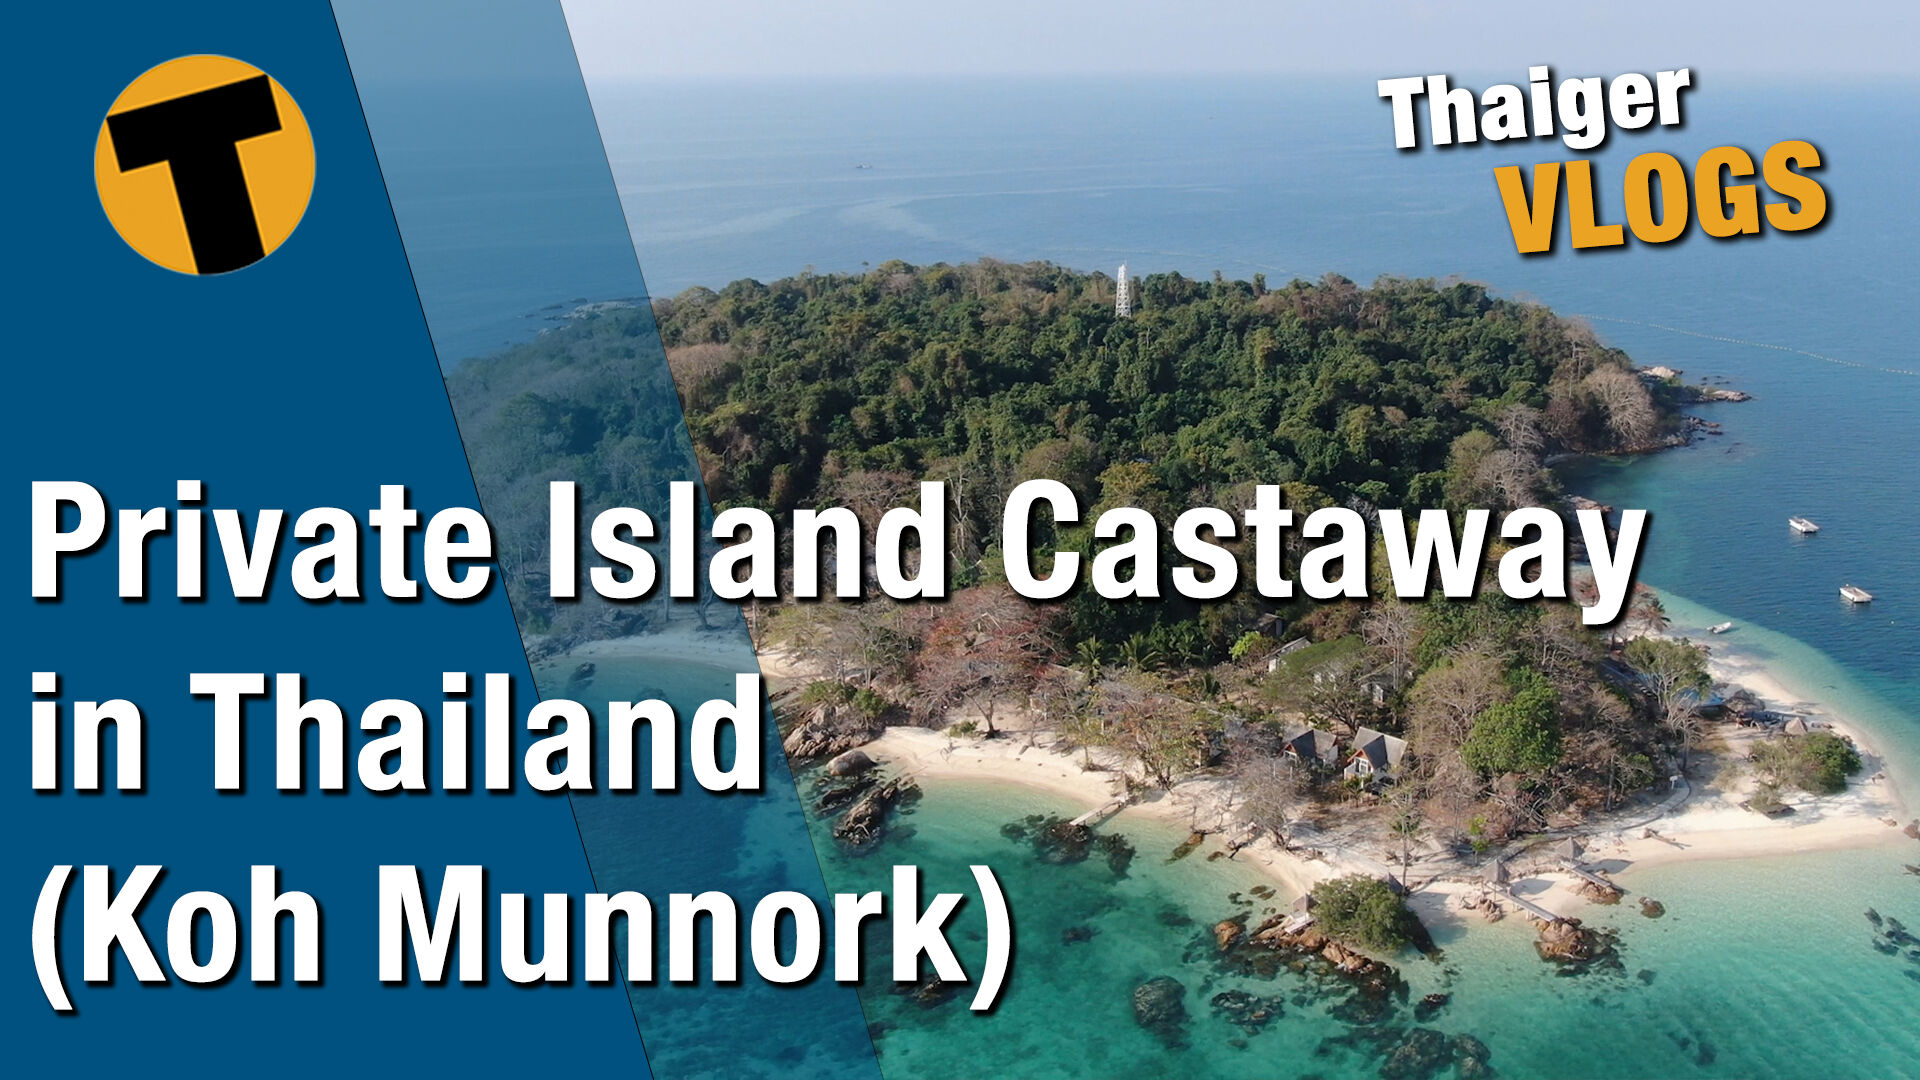 Be a private island castaway on Koh Munnork, Thailand | VIDEO | Thaiger